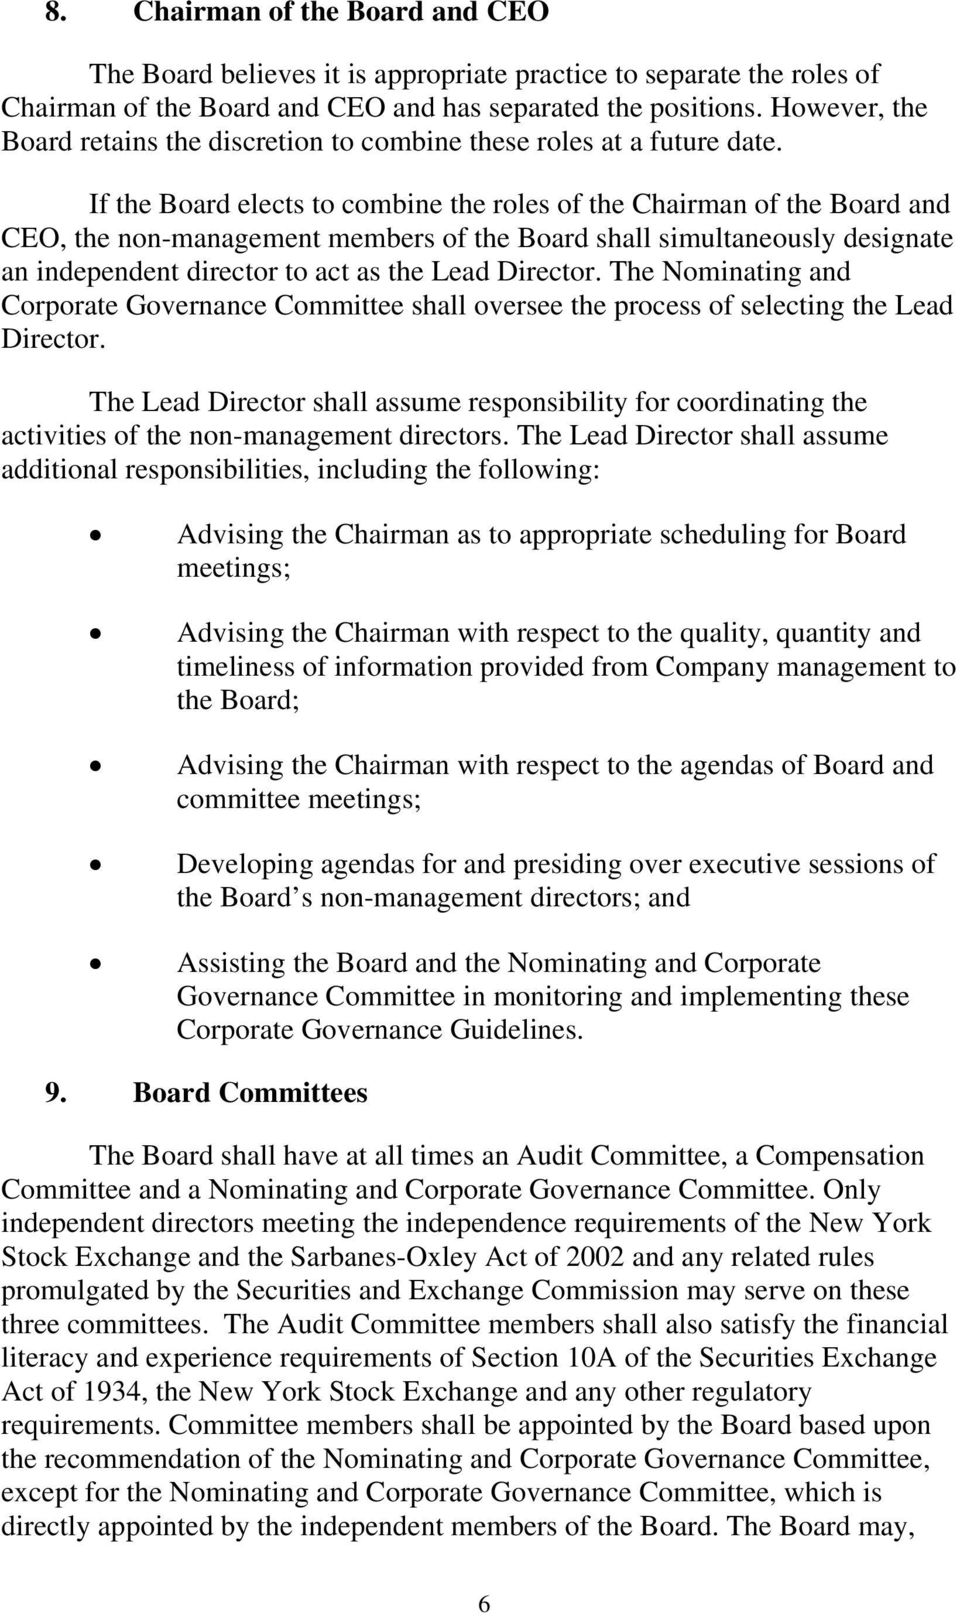 If the Board elects to combine the roles of the Chairman of the Board and CEO, the non-management members of the Board shall simultaneously designate an independent director to act as the Lead